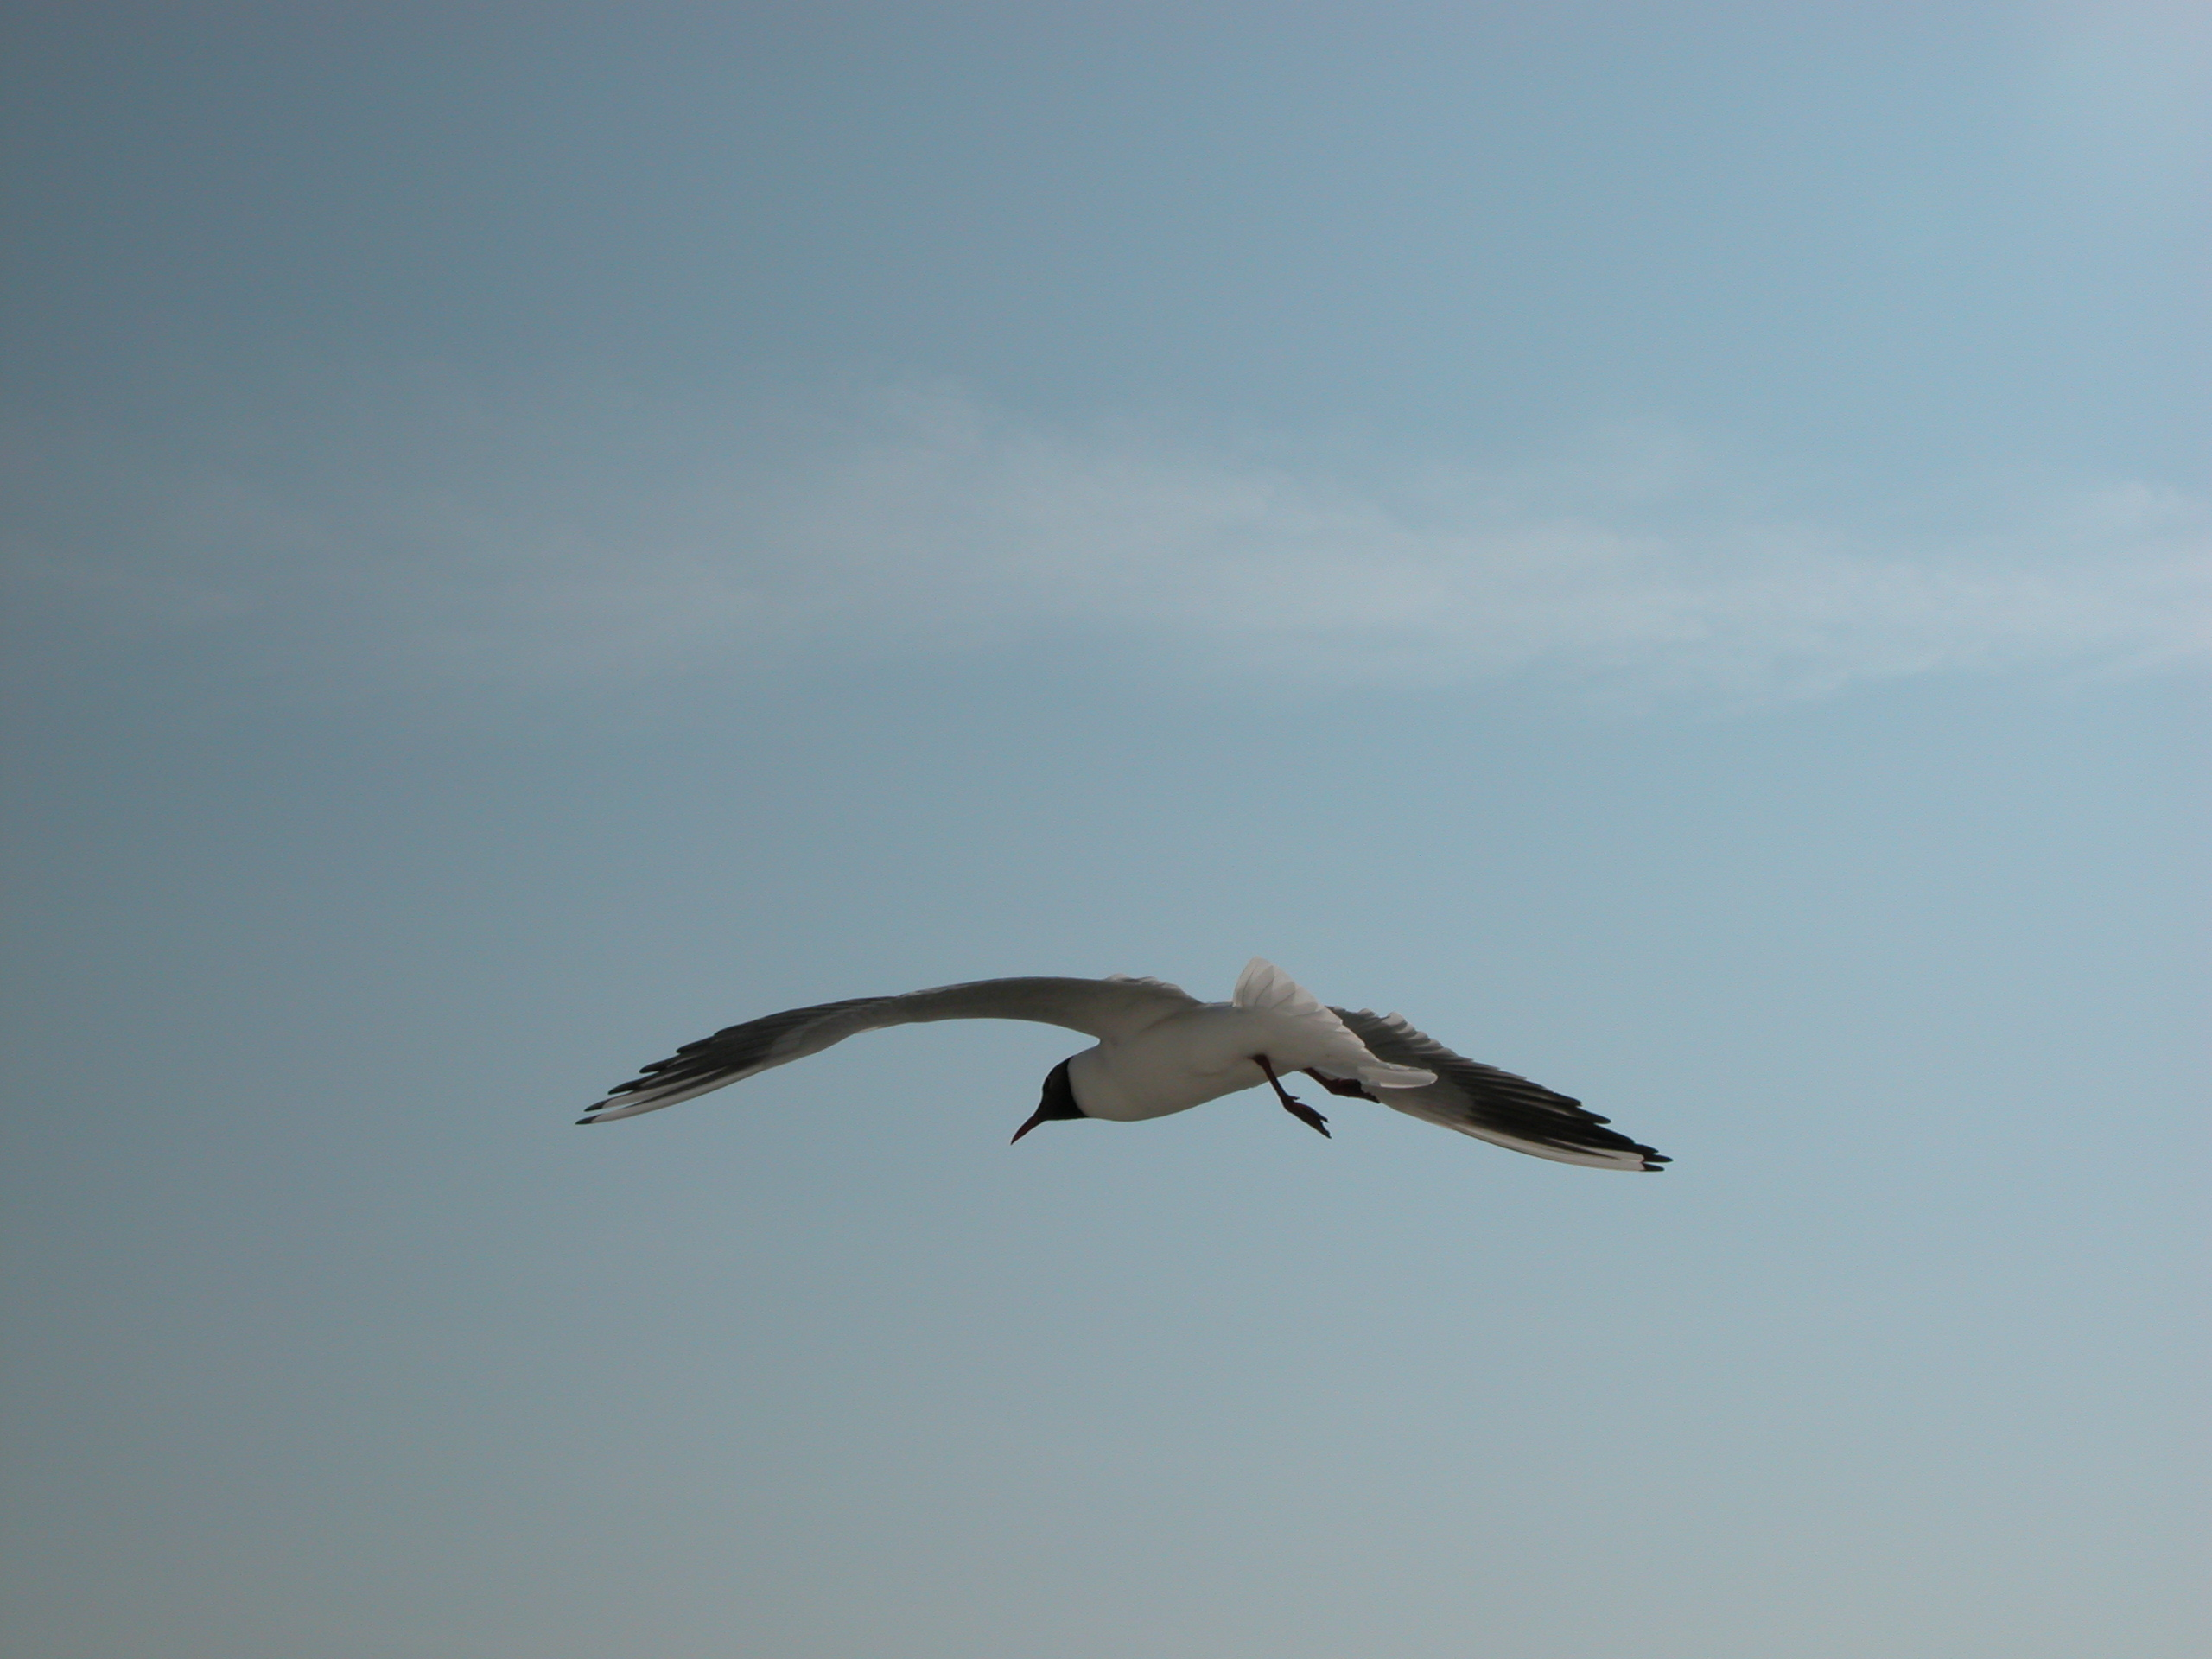 seagull gull bird flying wings wingspan